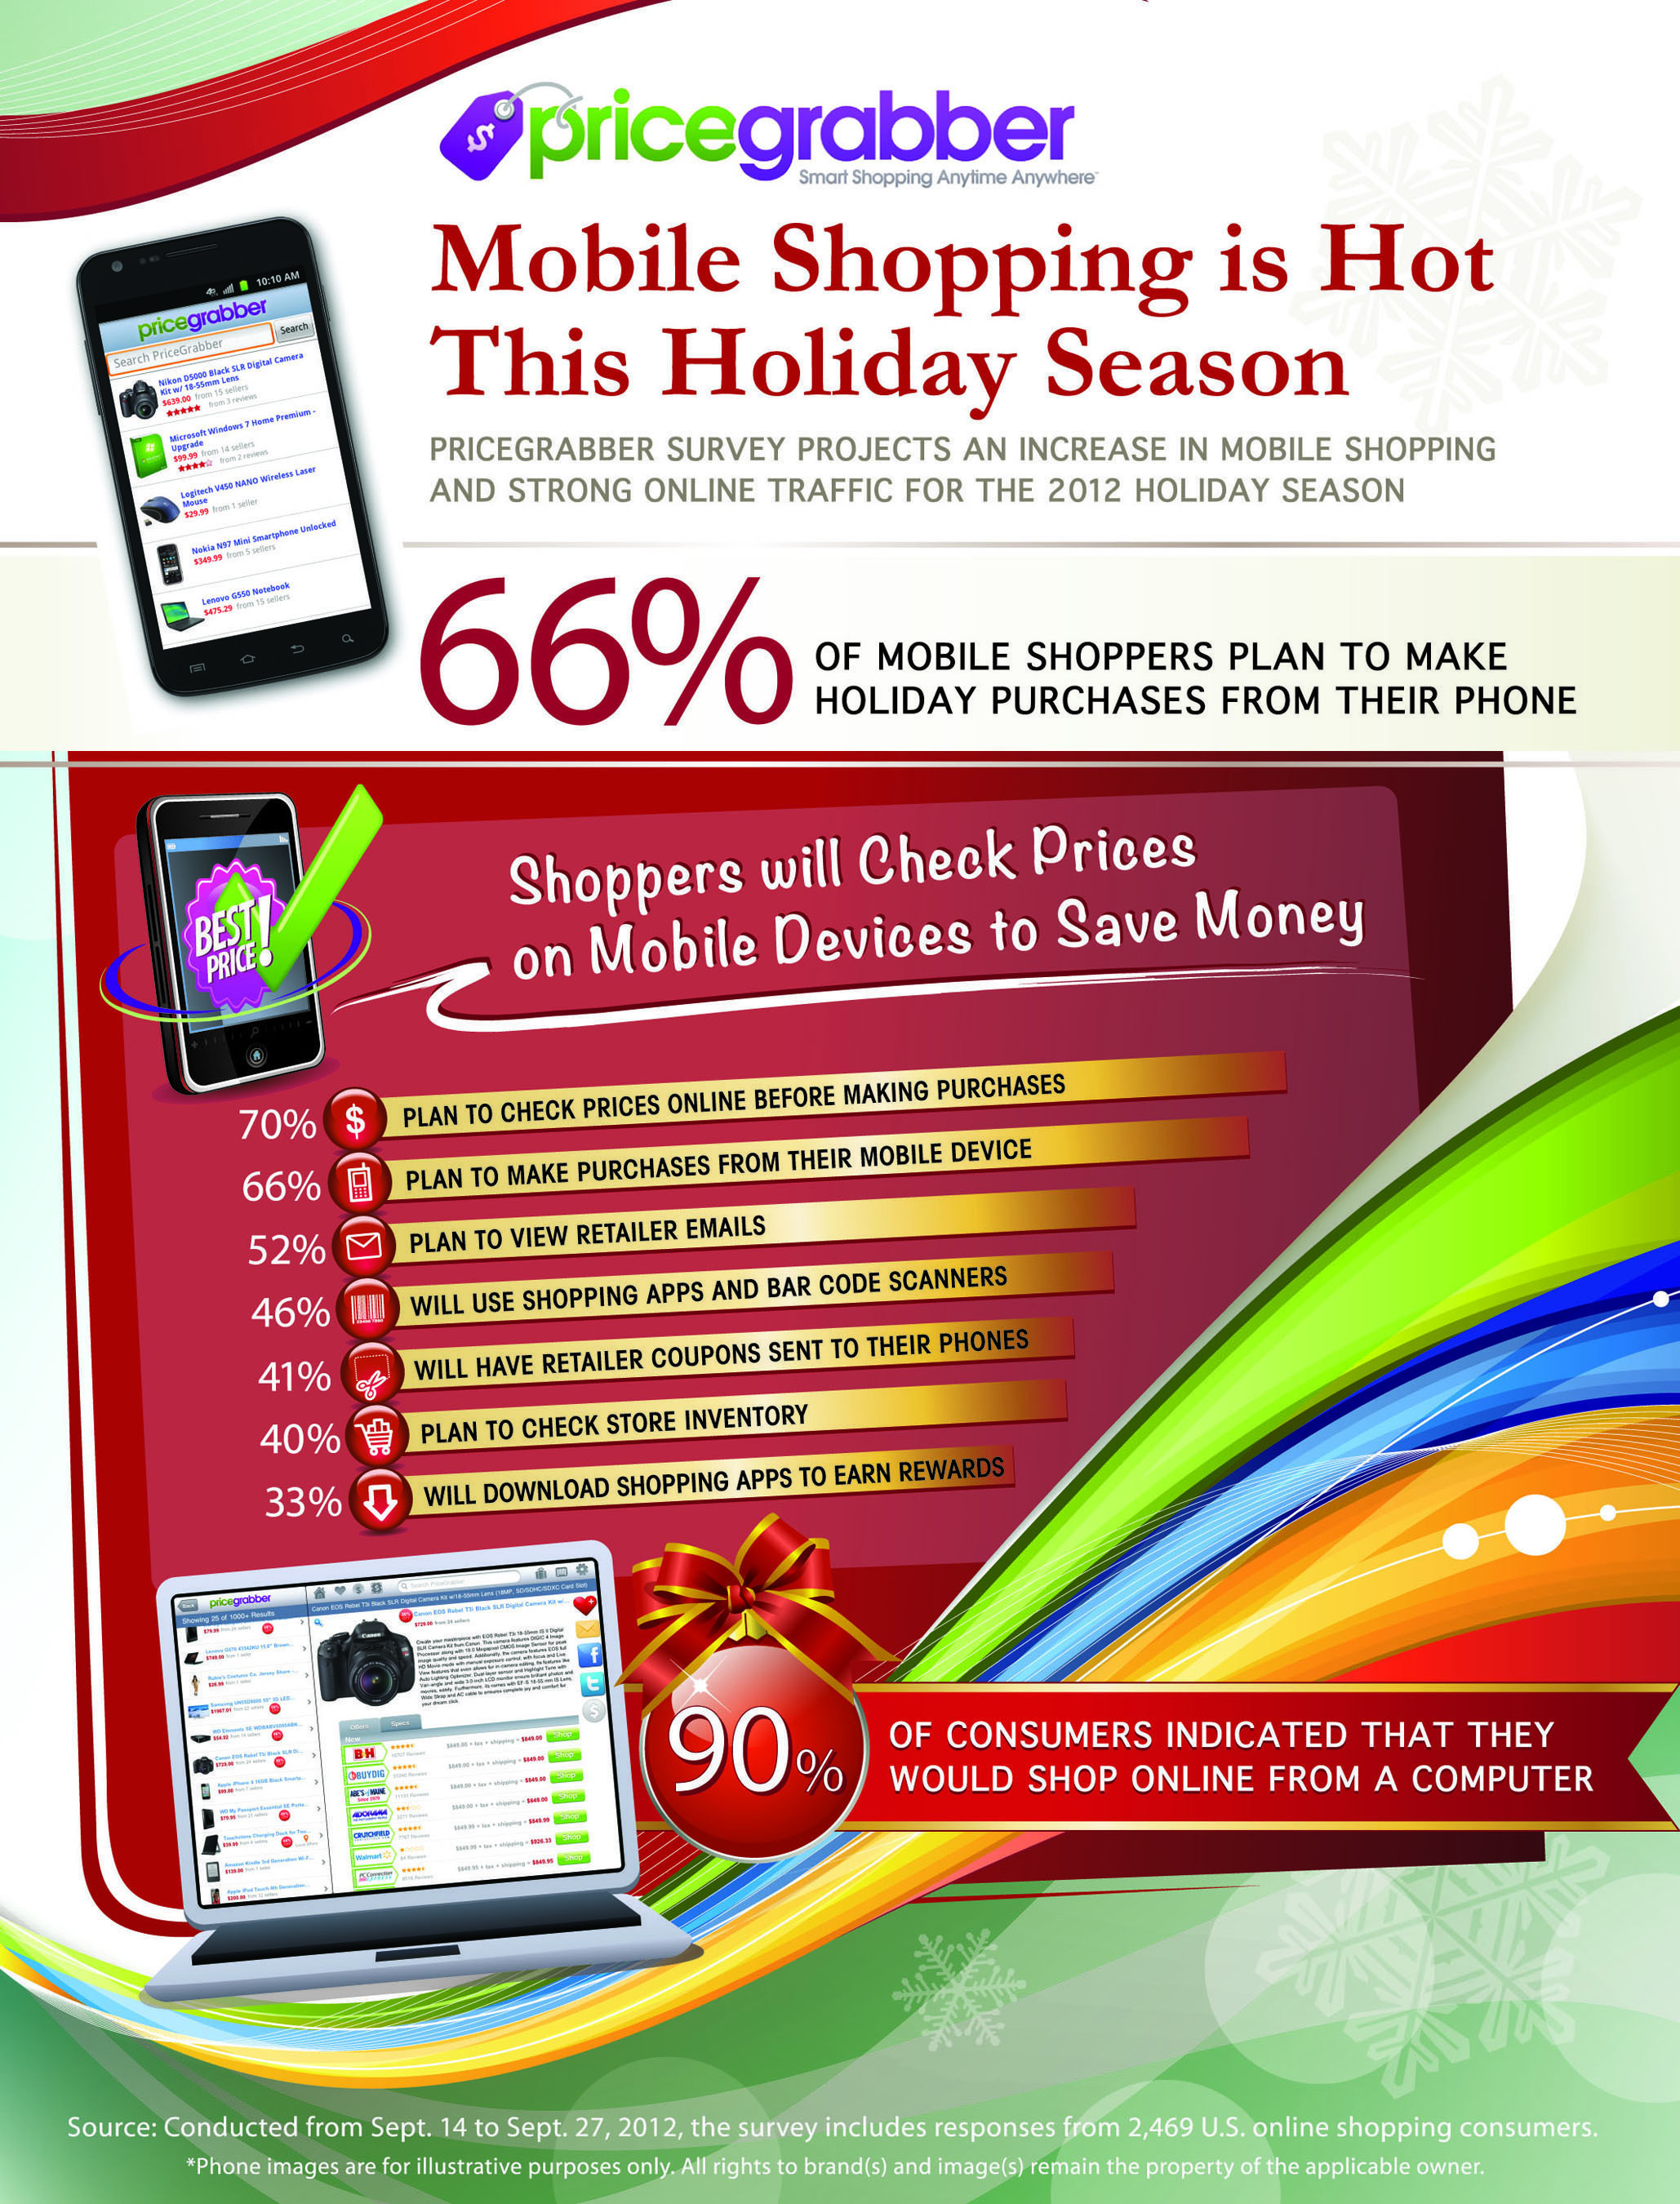 Mobile Shopping is Hot this Holiday Season Says PriceGrabber Survey.  (PRNewsFoto/PriceGrabber.com)